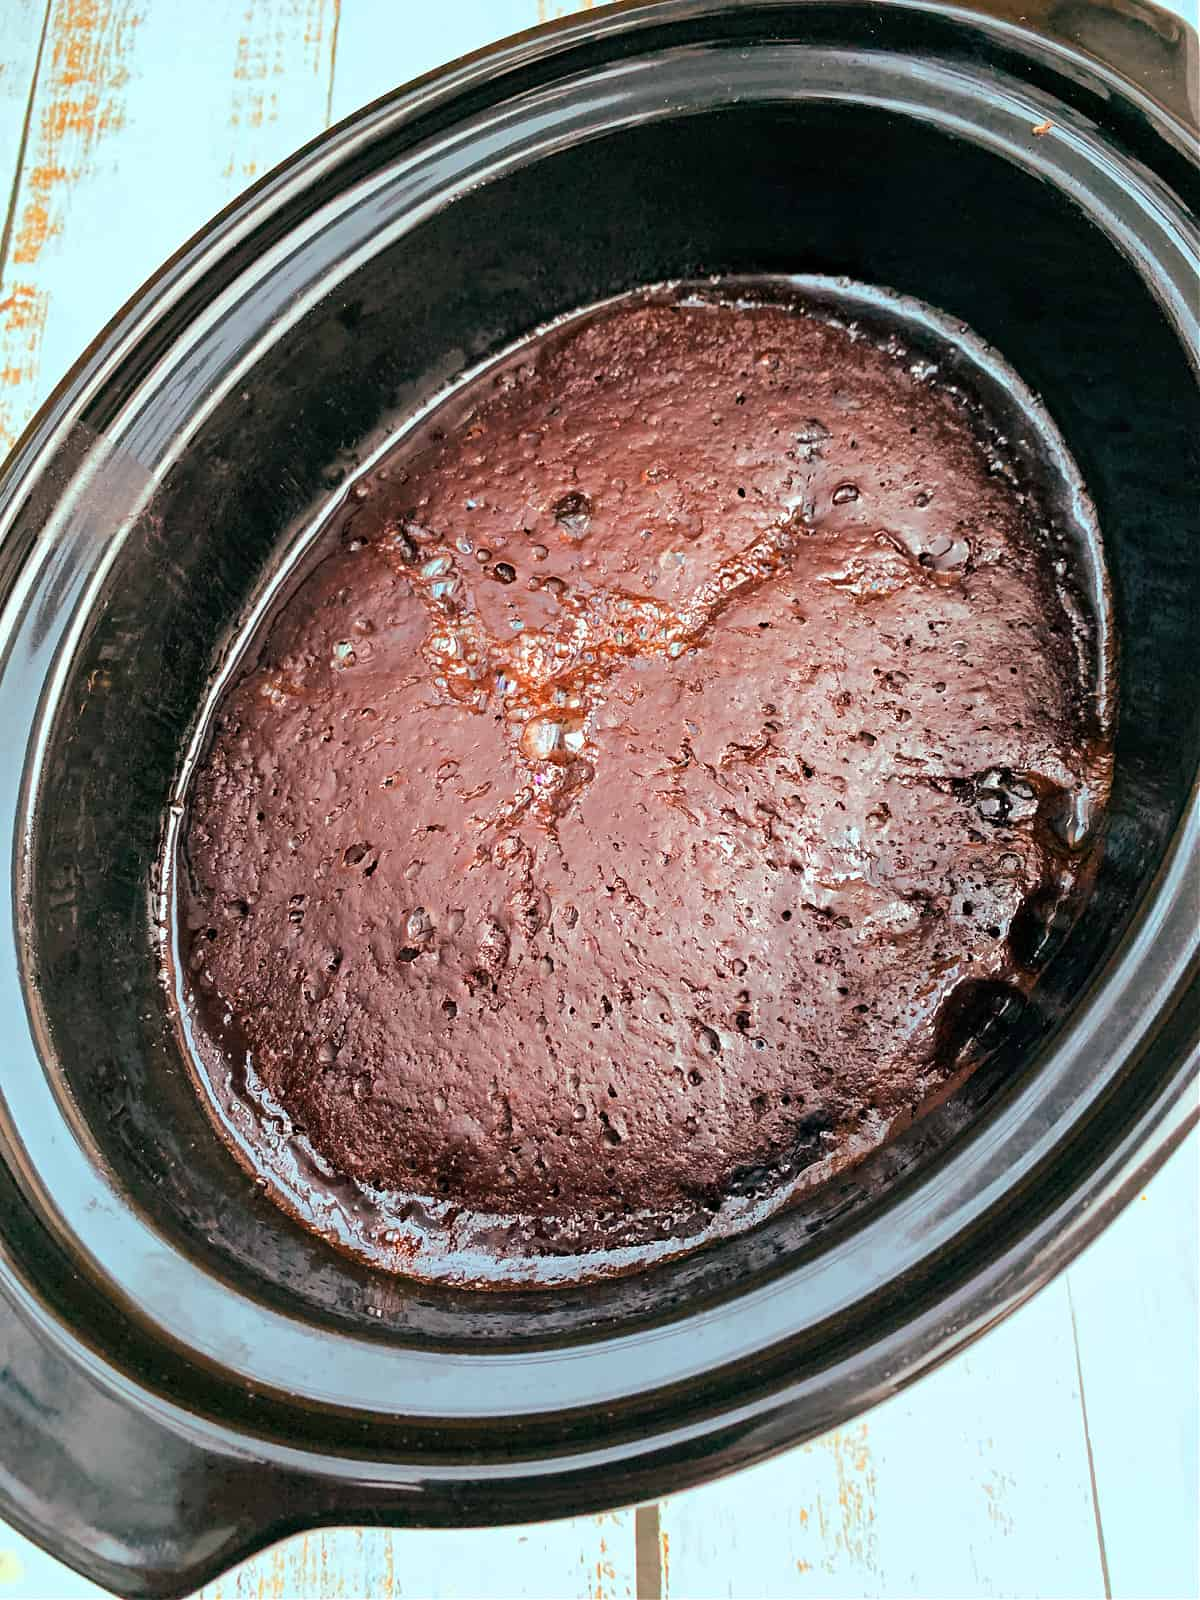 Chocolate orange pudding after baking, with a rich chocolate sponge cake layer over a chocolate sauce.